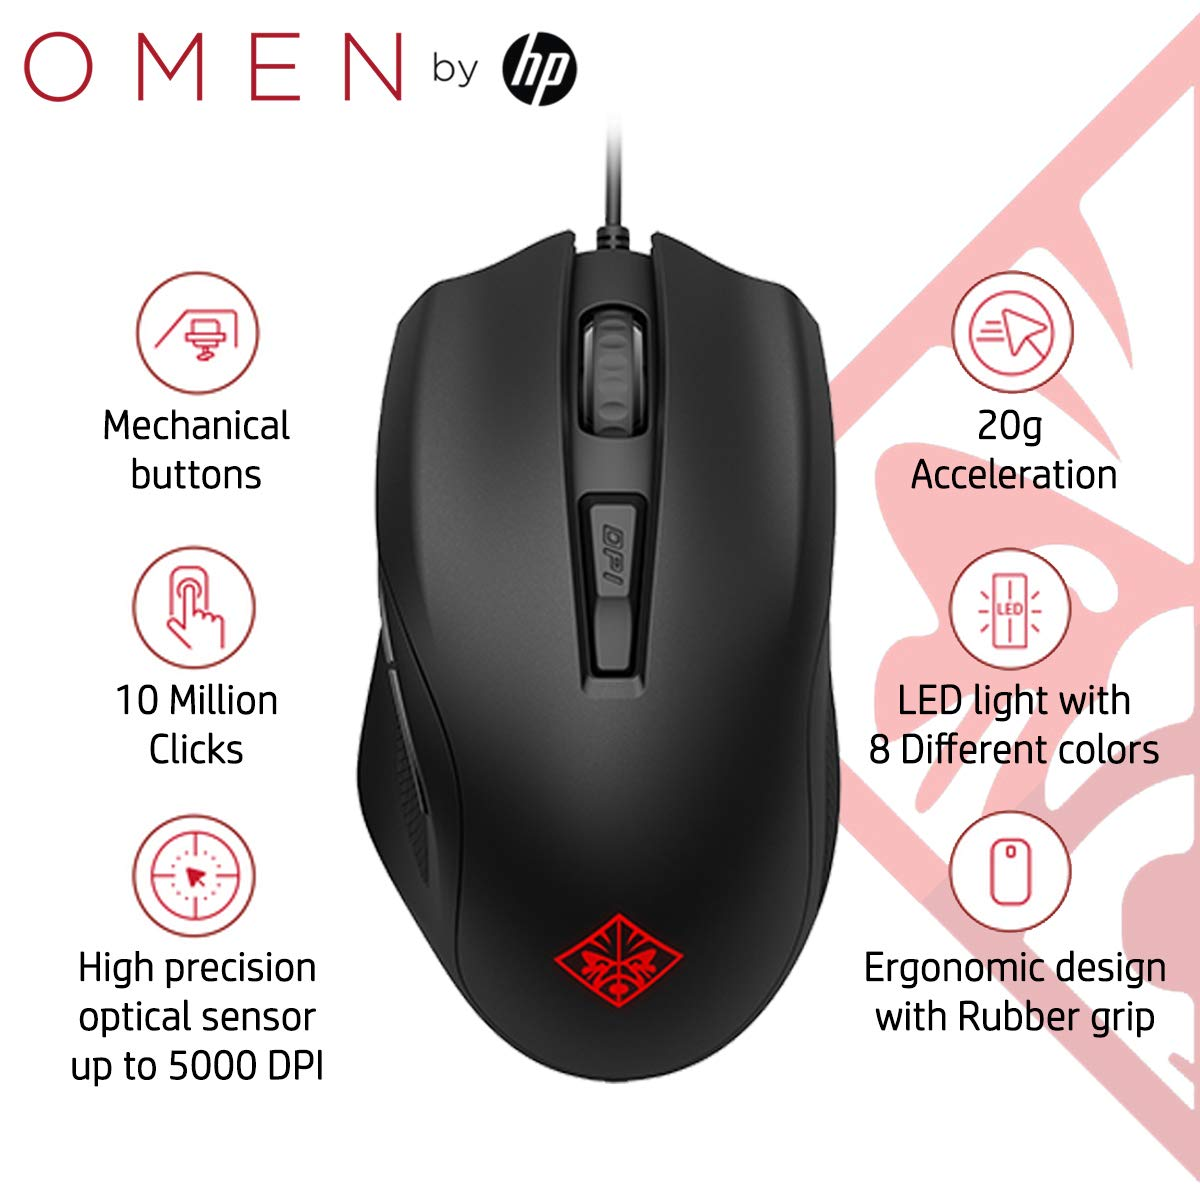 Amazon in: Buy HP OMEN 400 Gaming Mouse with 6 Customizable